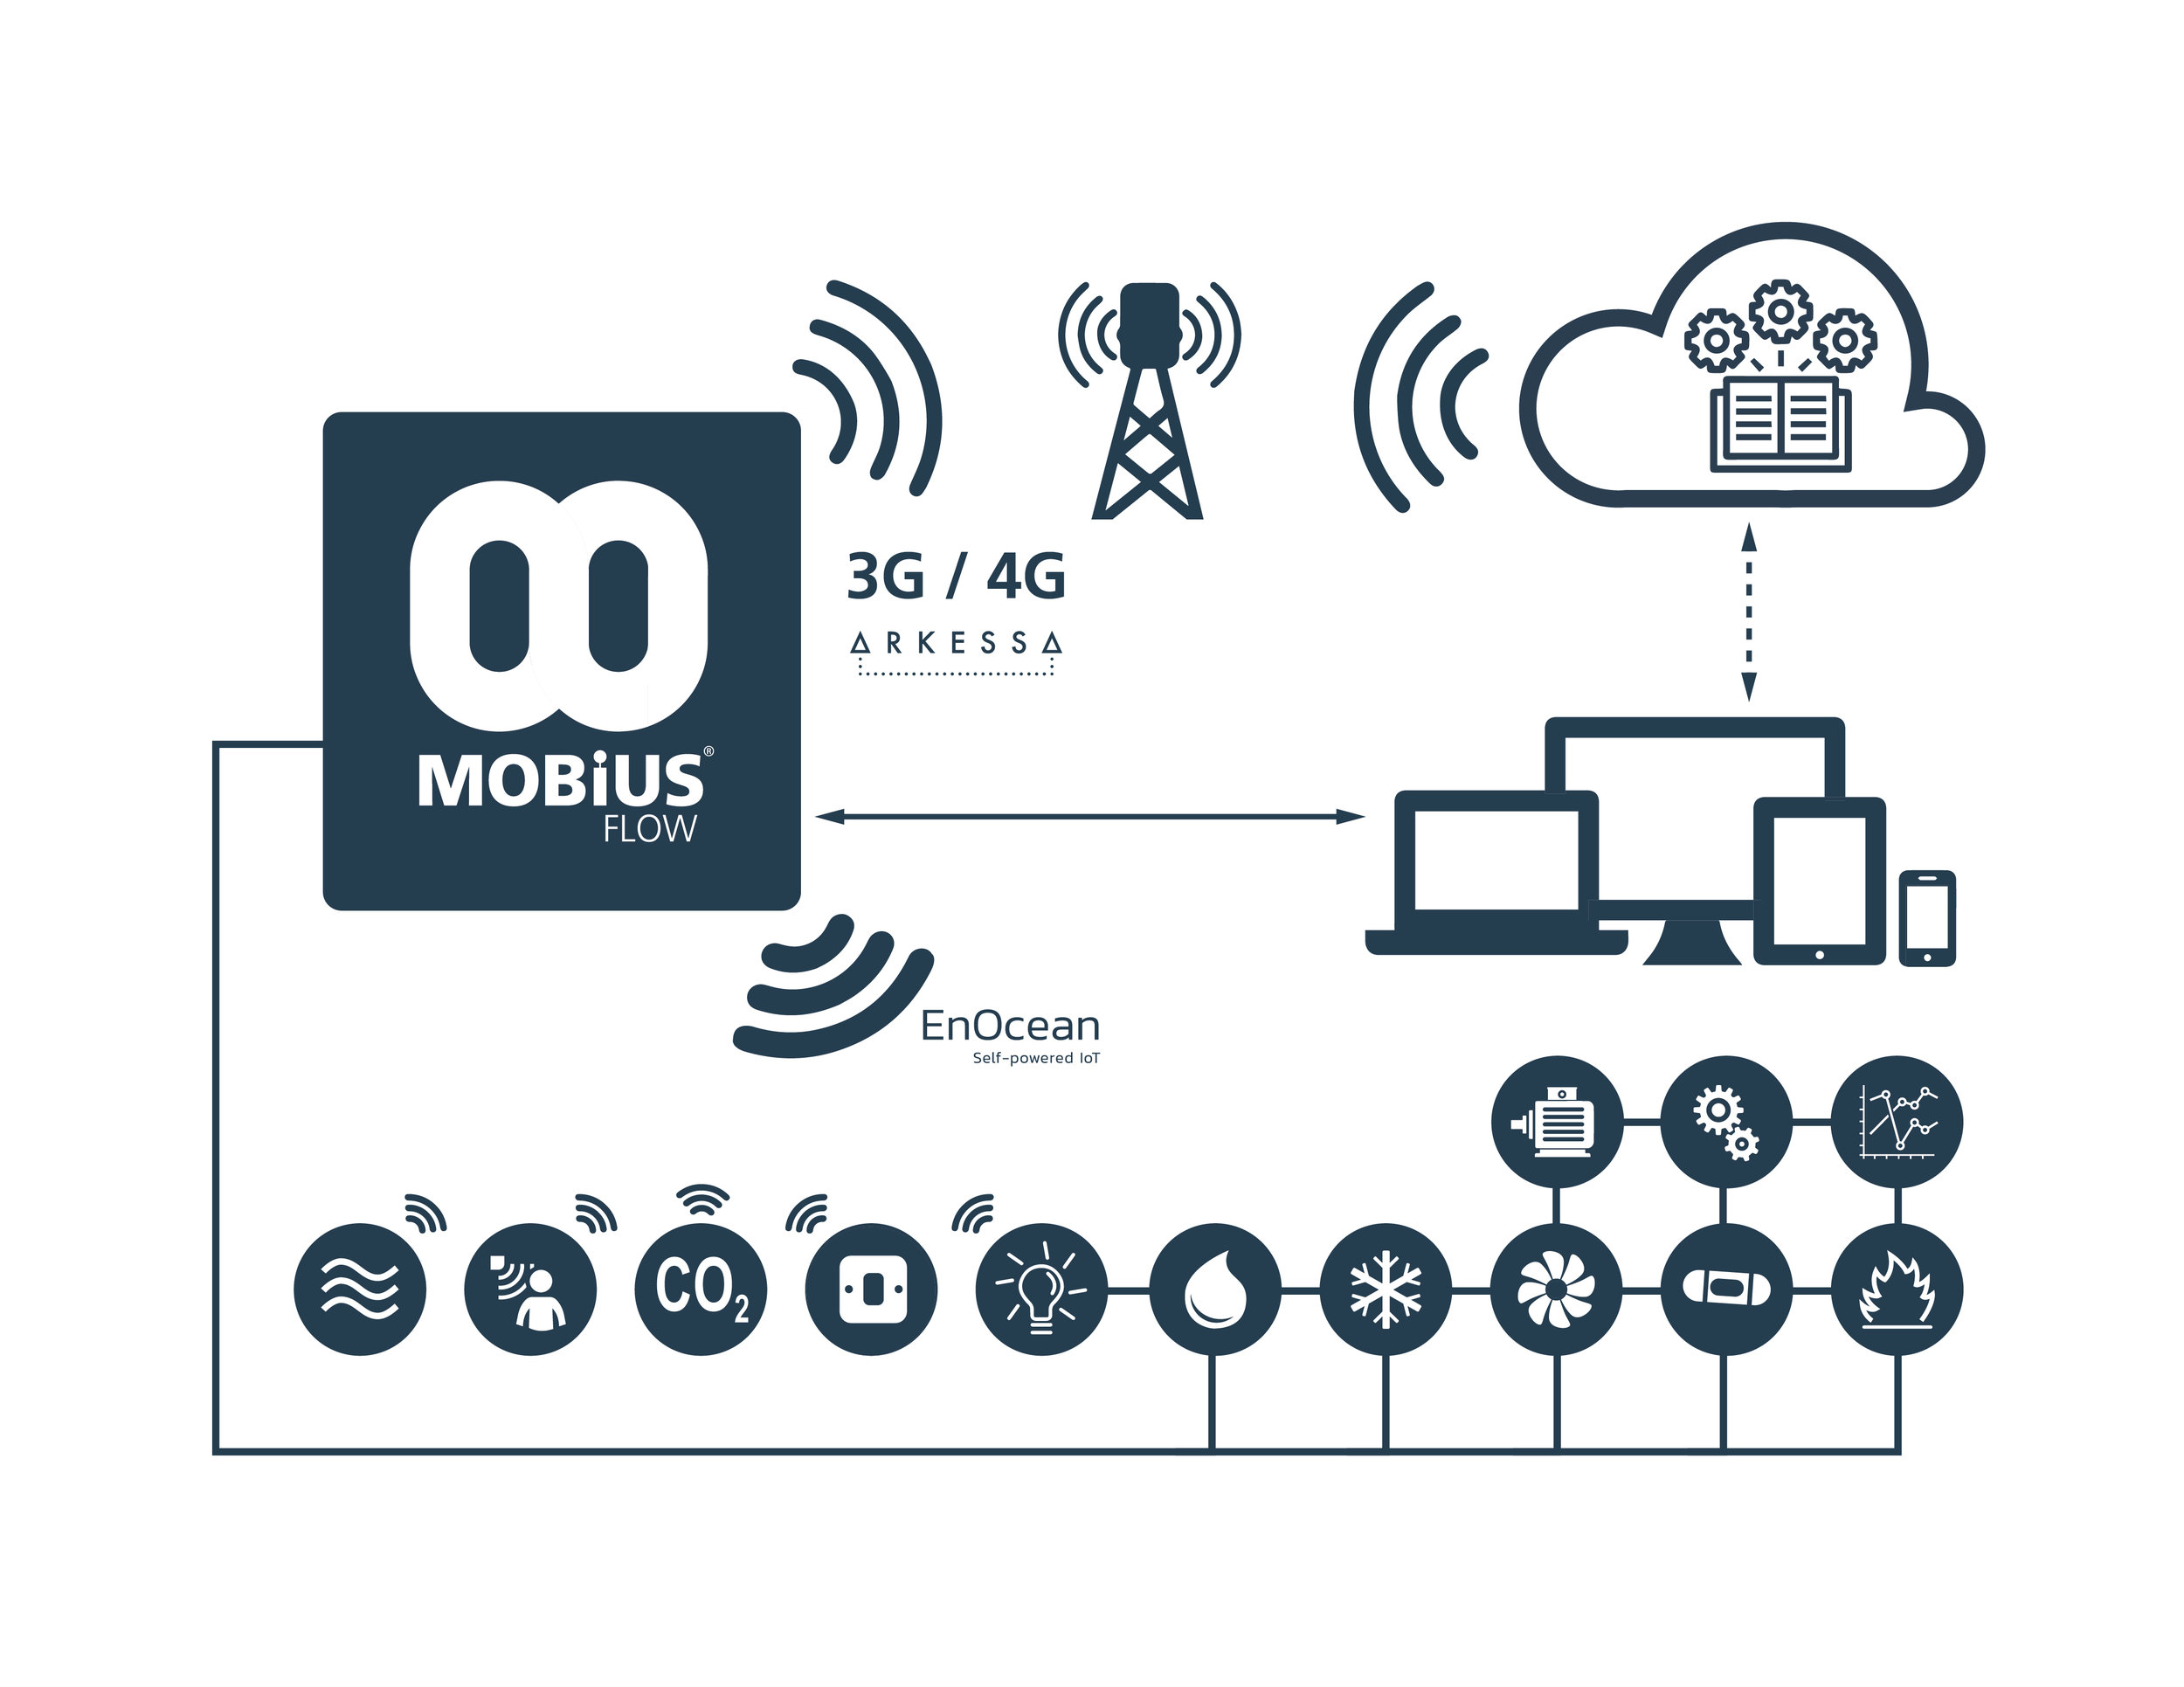 Above: A typical  Mobius Flow Gateway setup using Arkessa 3G/4G and wireless EnOcean devices and wired sensors